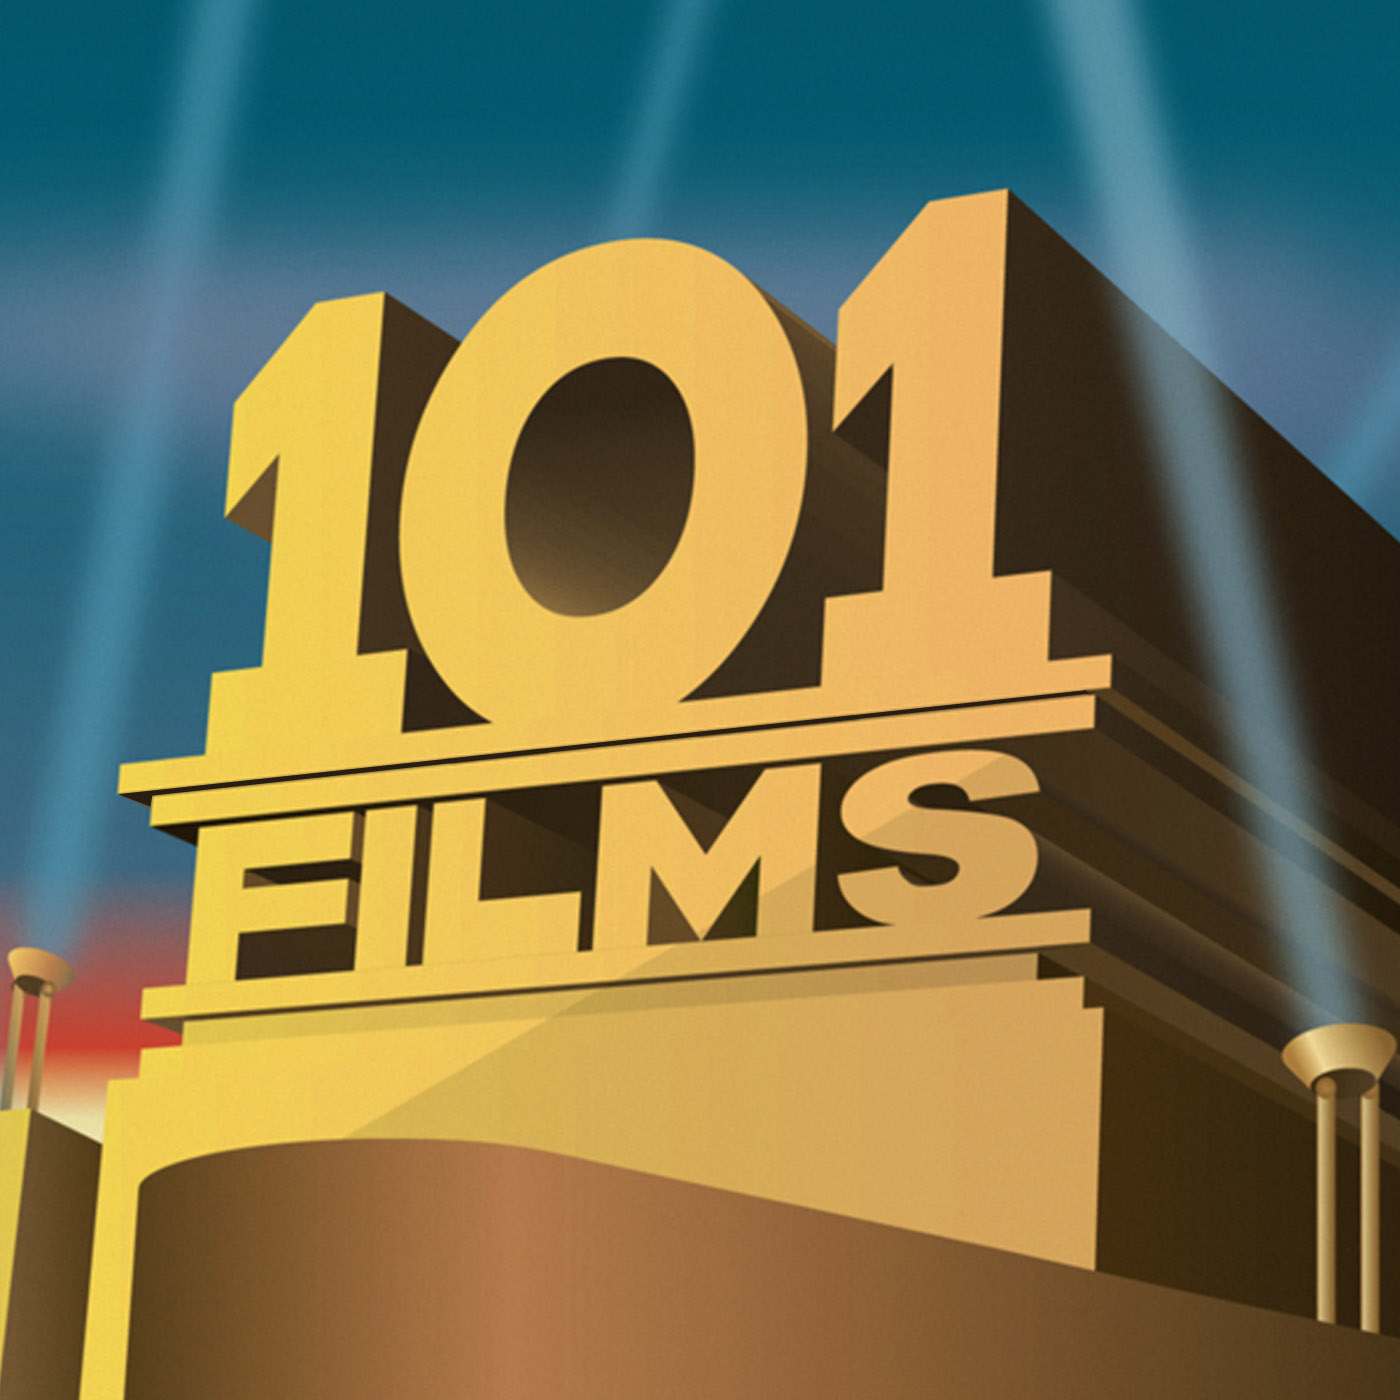 film you have seen recently Whether you visited your local movie theater or chose to cozy up on the sofa, we would like to hear about the films you've been watching over the past few days.